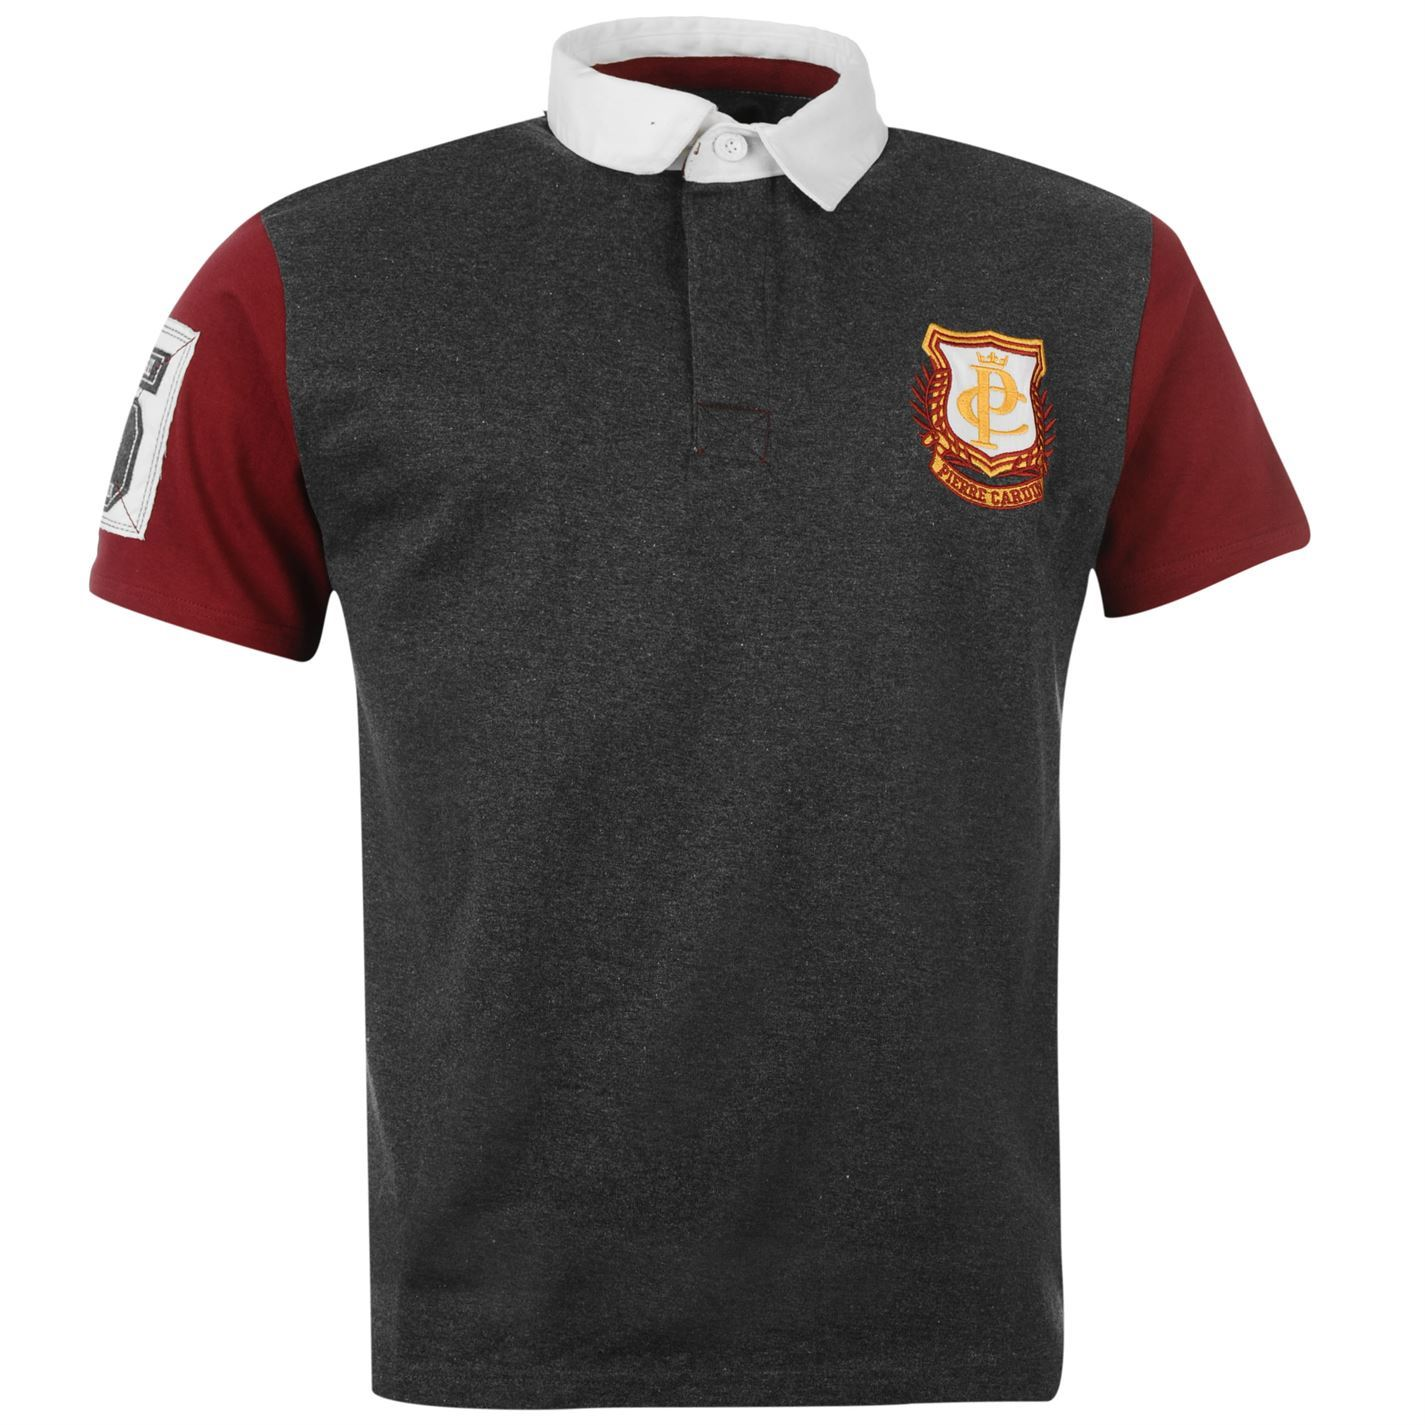 pierre cardin mens rugby polo t shirt jersey top casual. Black Bedroom Furniture Sets. Home Design Ideas